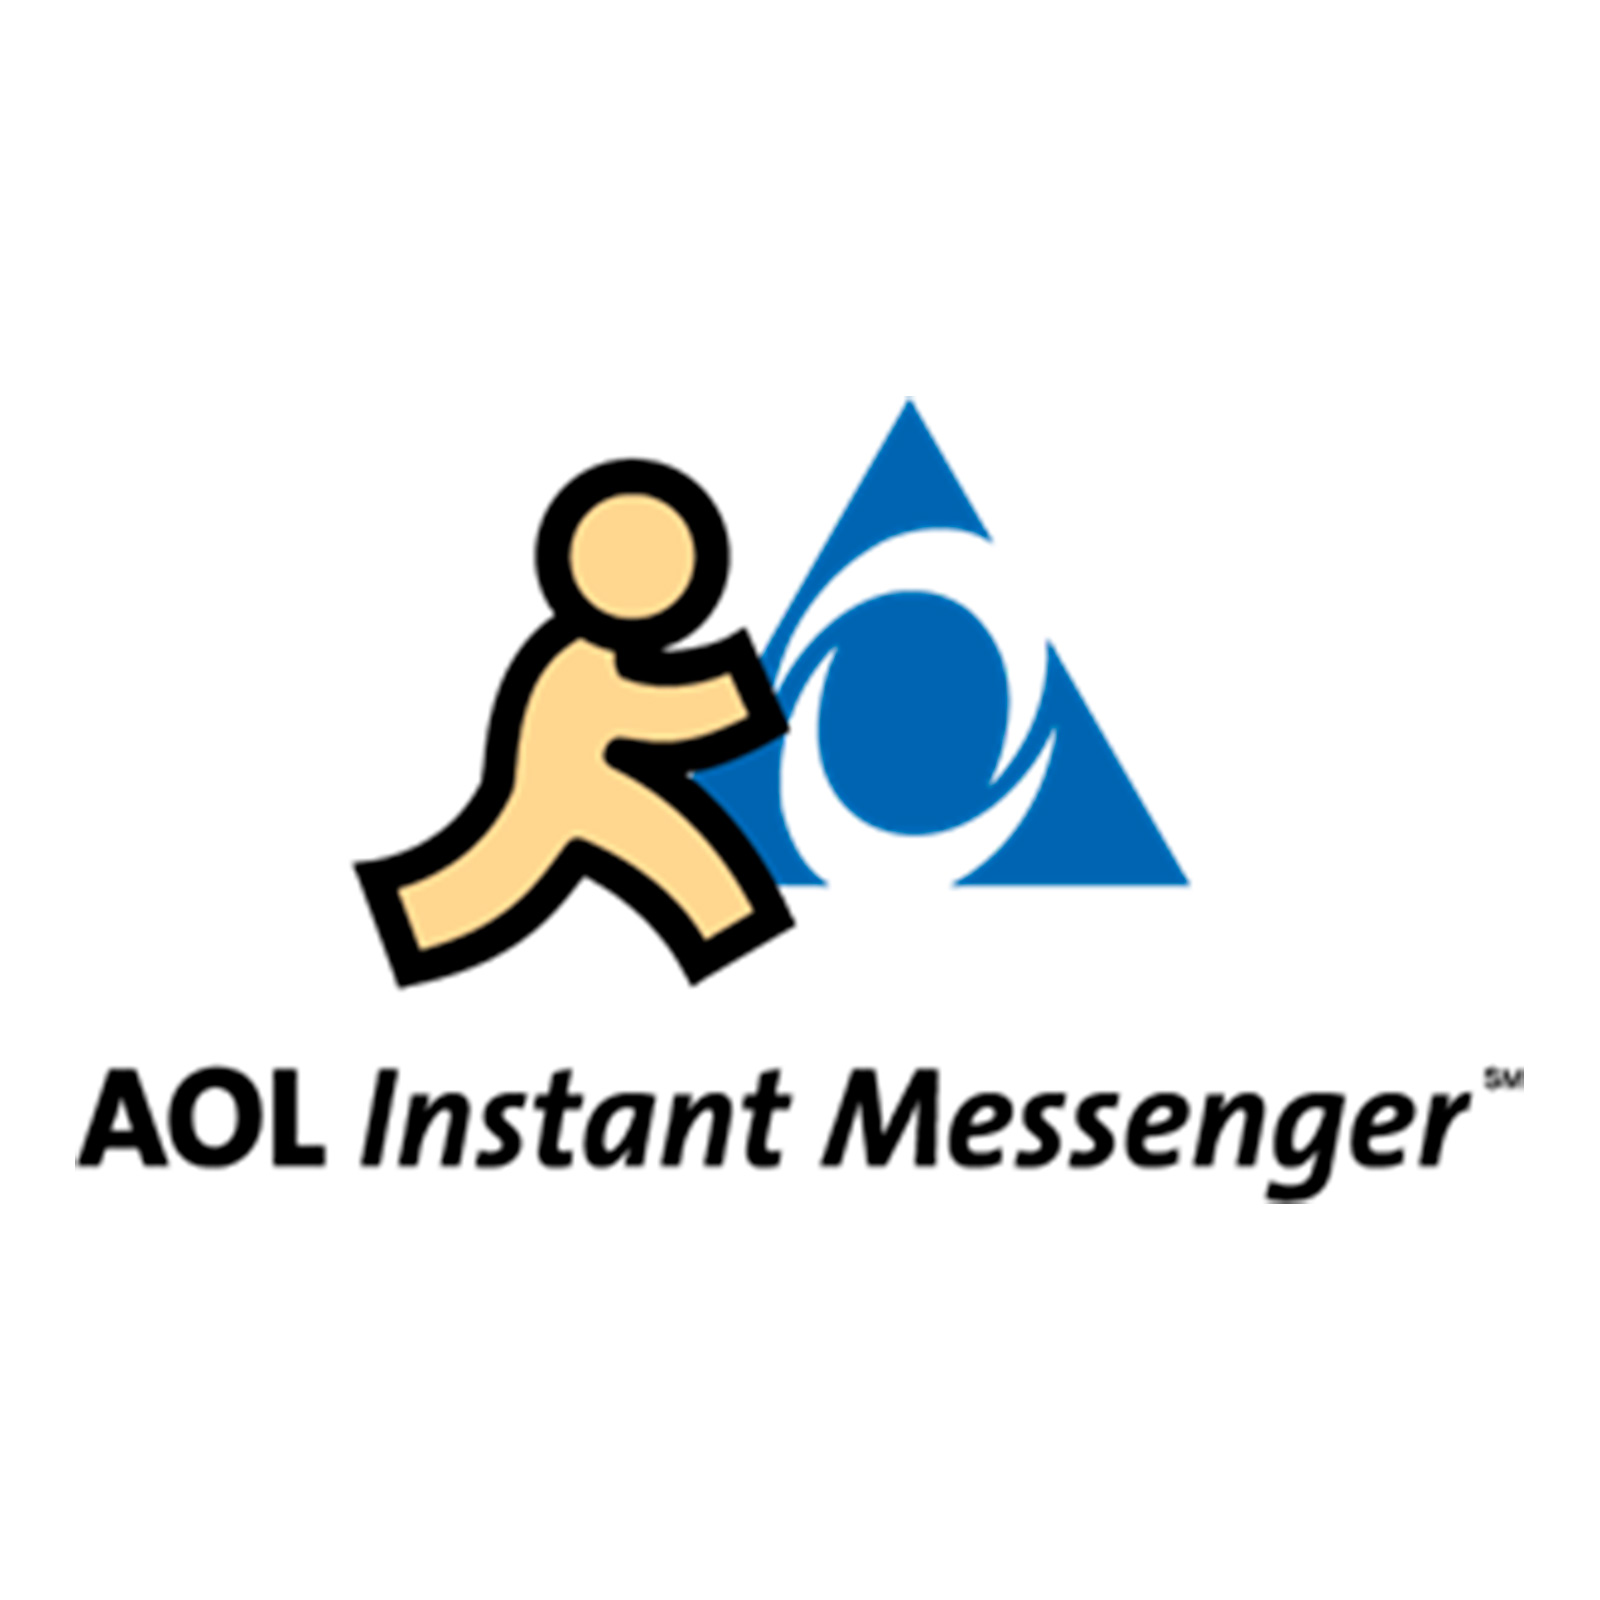 Instant Messenger is born. AOL Messenger was an instant messaginng tool as well as a presence computer program created by AOL. The application used proprietary OSCAR instant messaging protocol and the TOC protocol for communication.